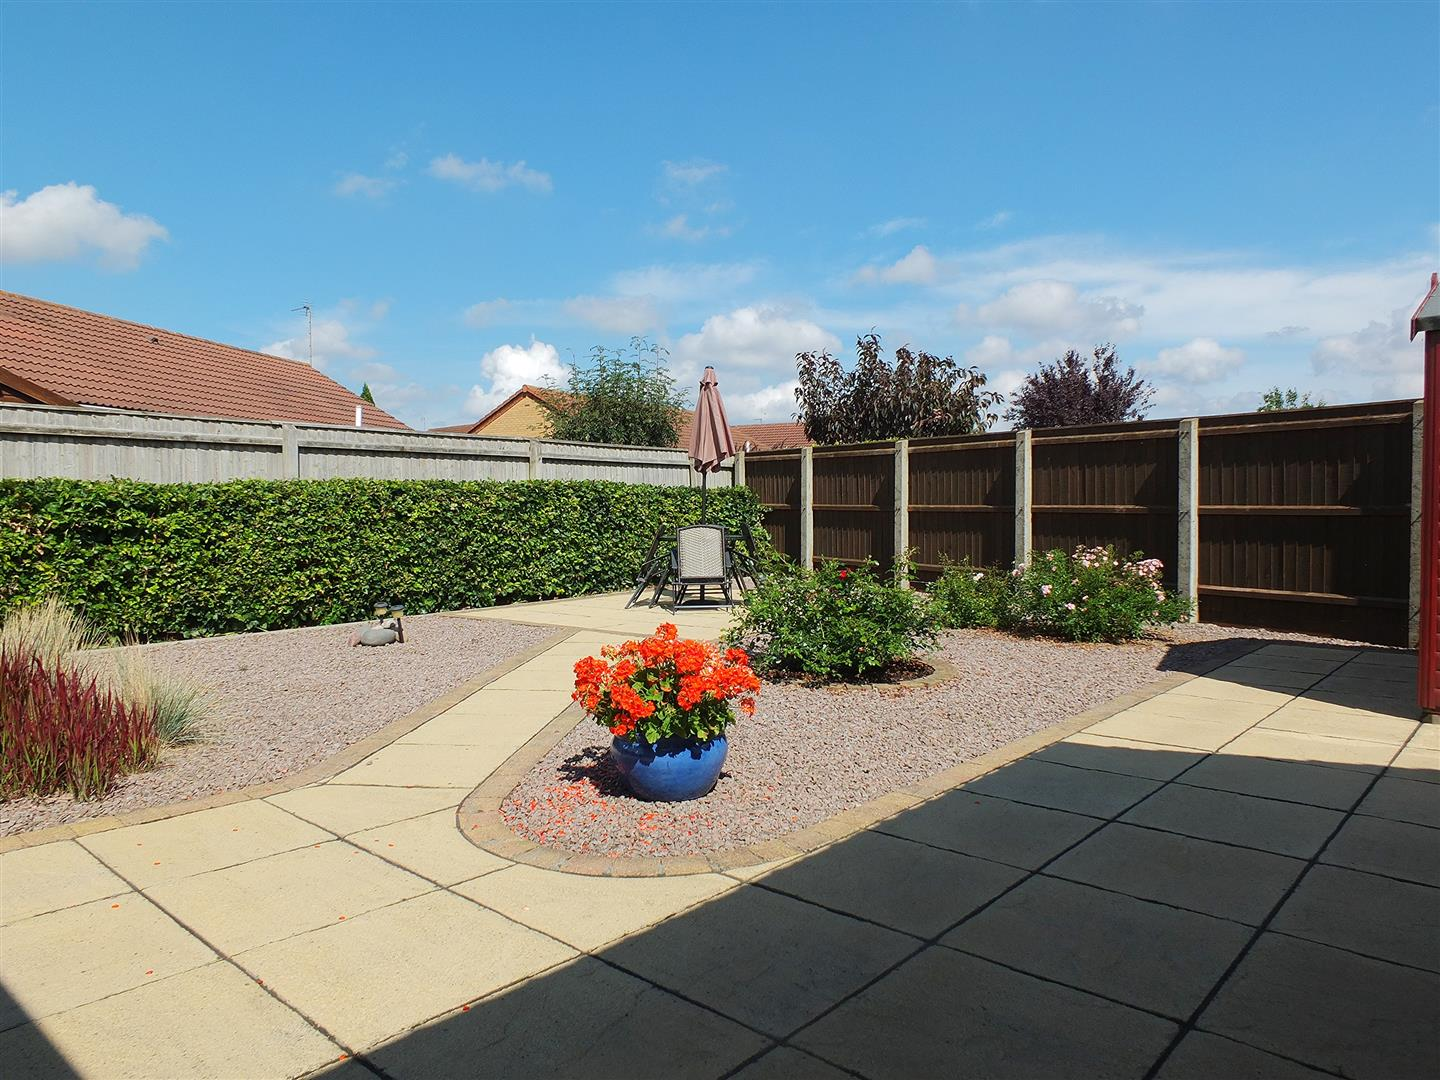 3 bed detached bungalow for sale in Long Sutton Spalding, PE12 9FT 16